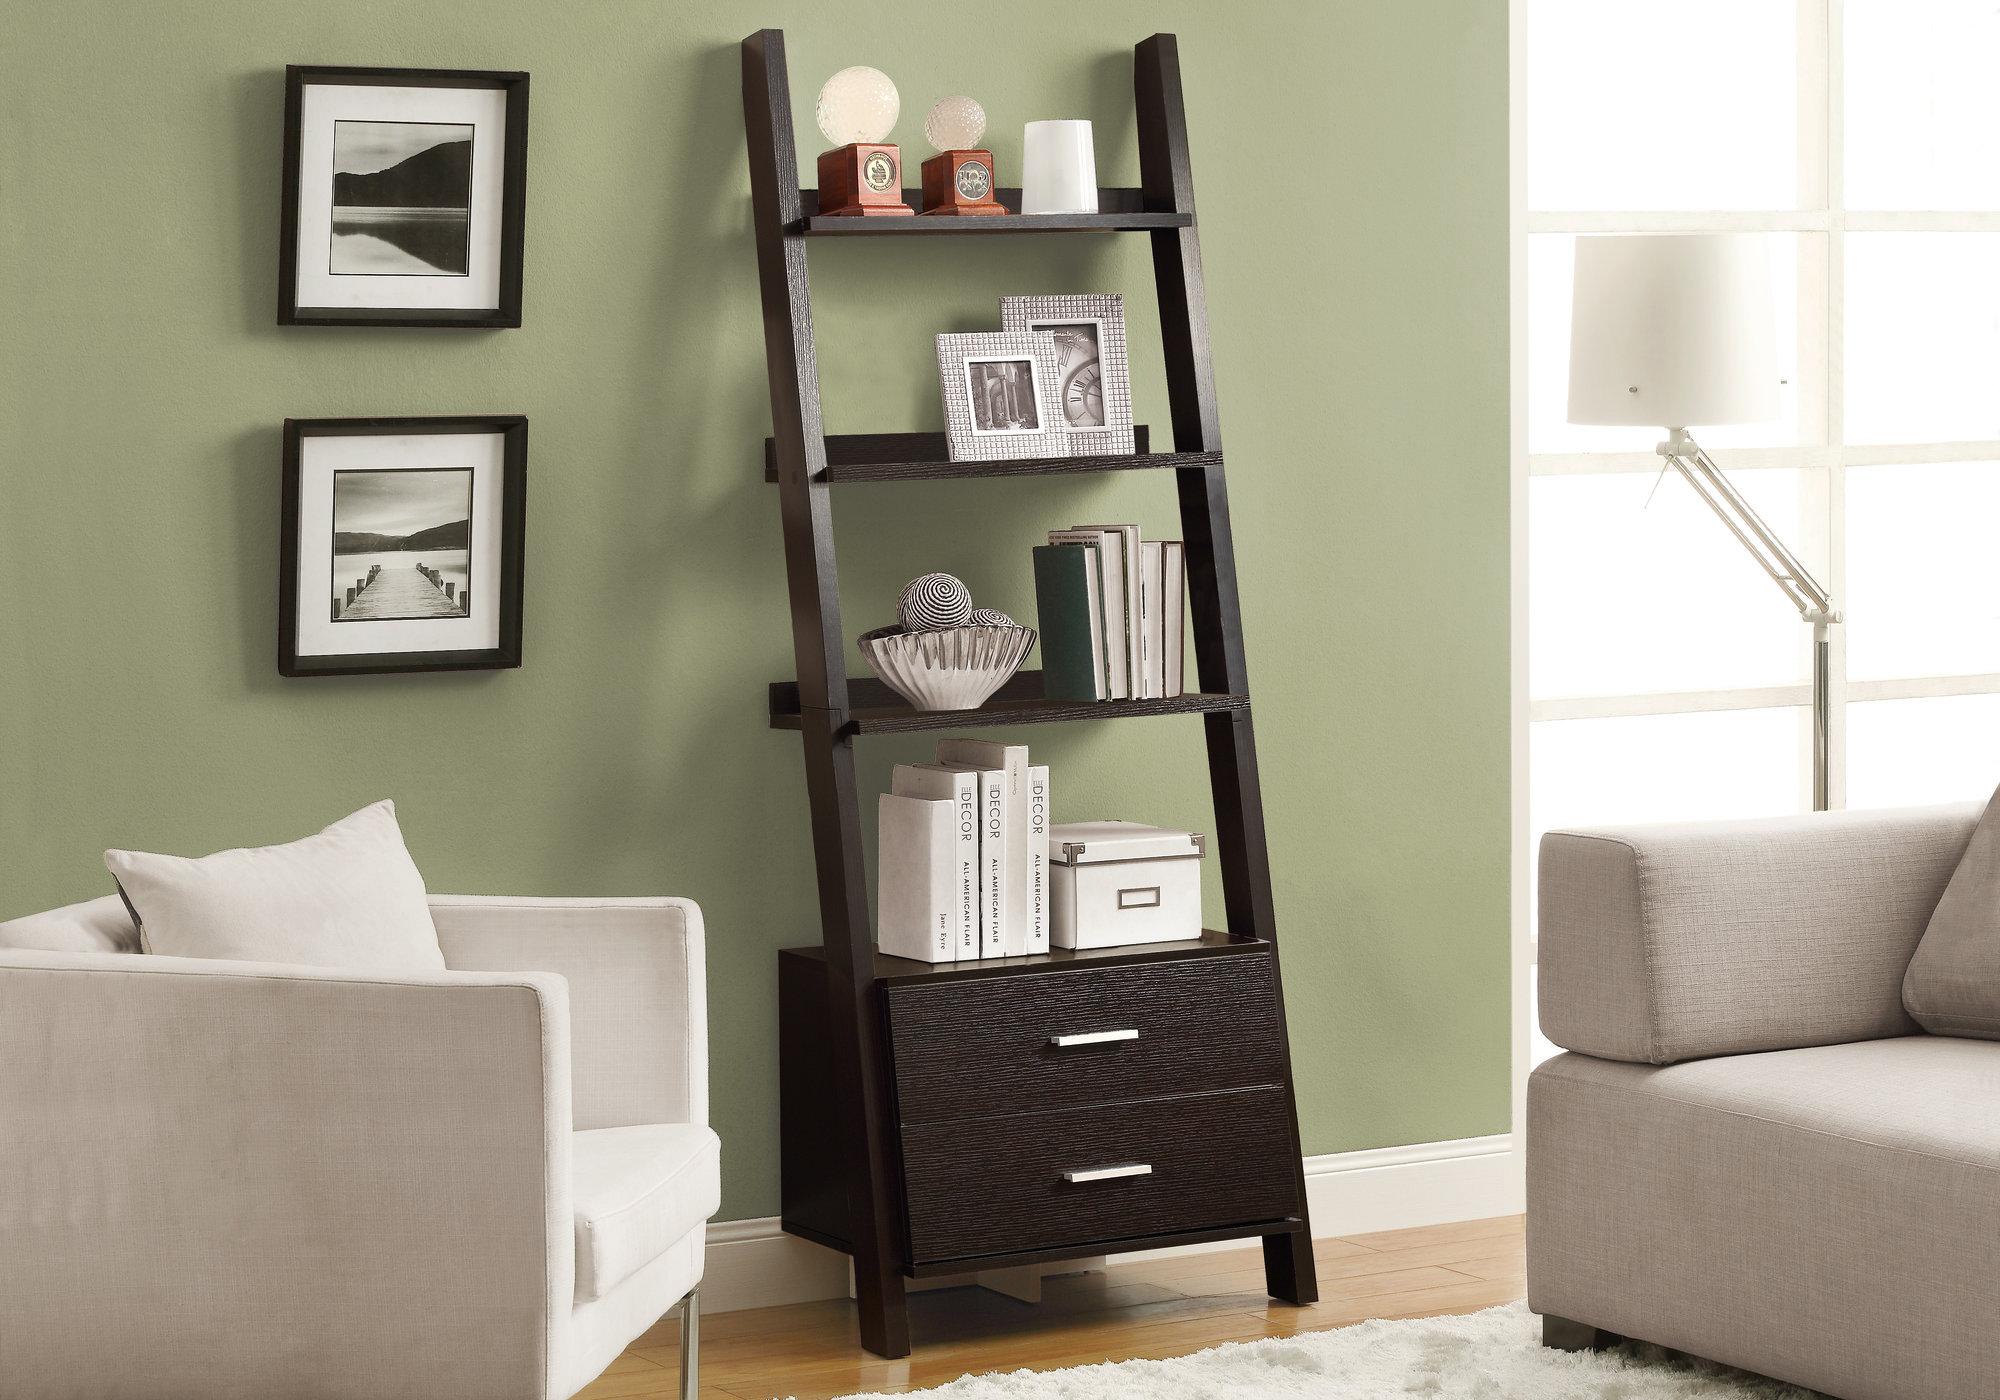 Monarch 69 Contemporary Wood Grain Look 4 Shelf Ladder Bookcase With Storage Drawers Cappuccino Brown Finish